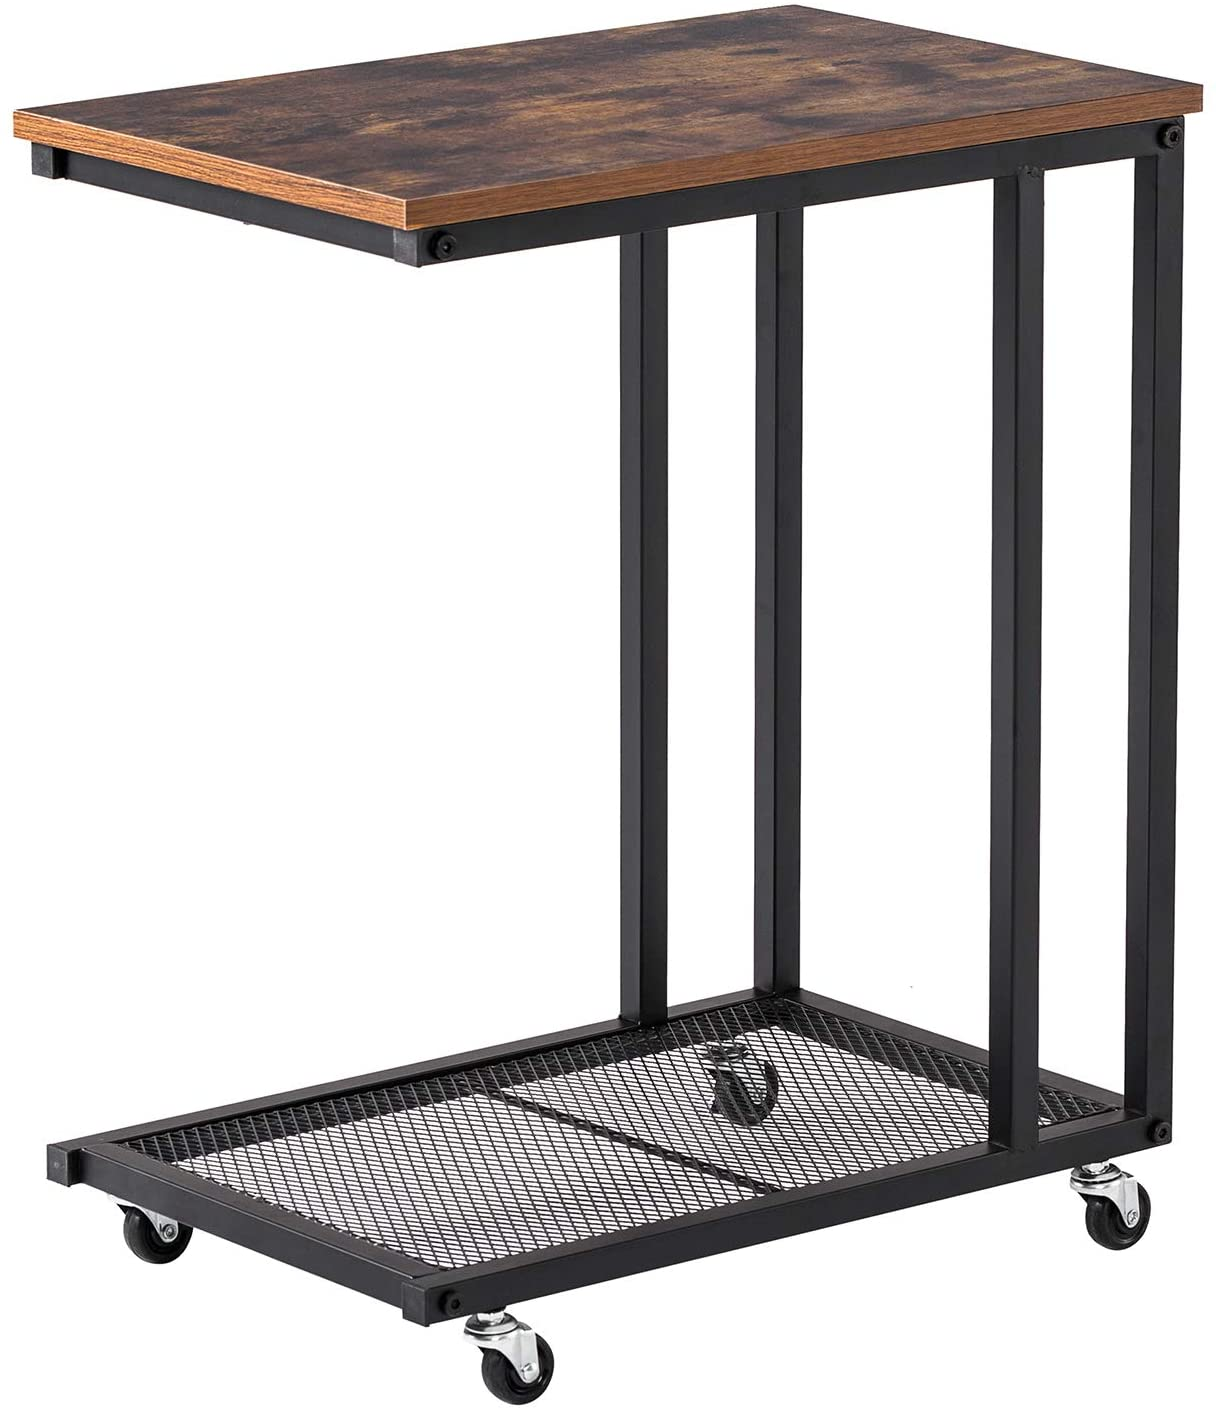 Yasmine Industrial Side Table, Mobile Snack Table for Coffee Laptop Tablet, Slides Next to Sofa Couch, Wood Look Accent Furniture with Metal Frame